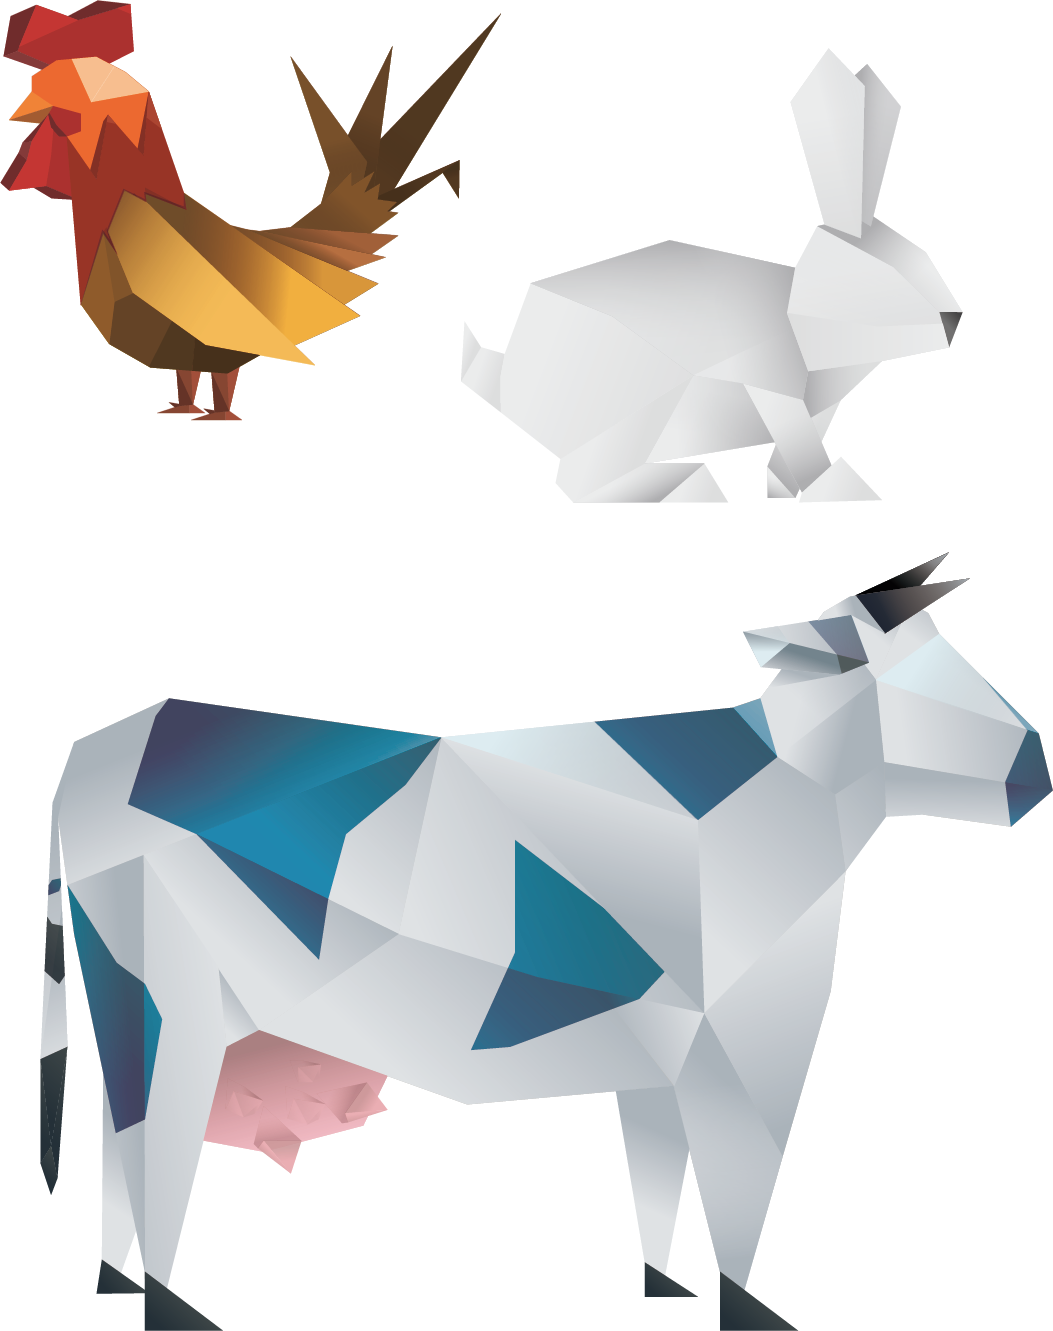 clipart transparent download Dairy cattle